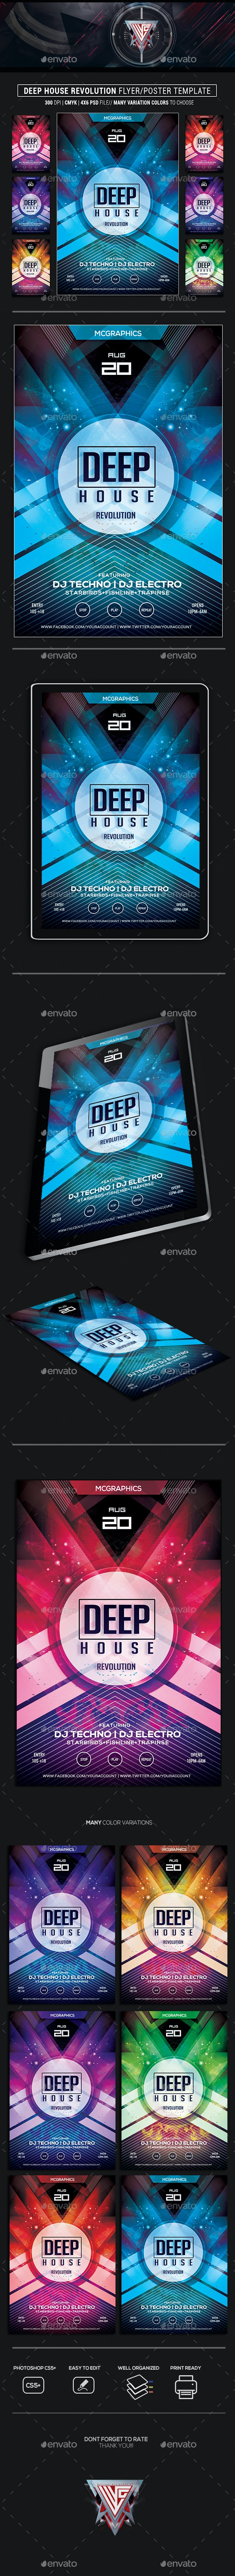 Deep House Revolution Flyer/Poster Template - Flyers Print Templates